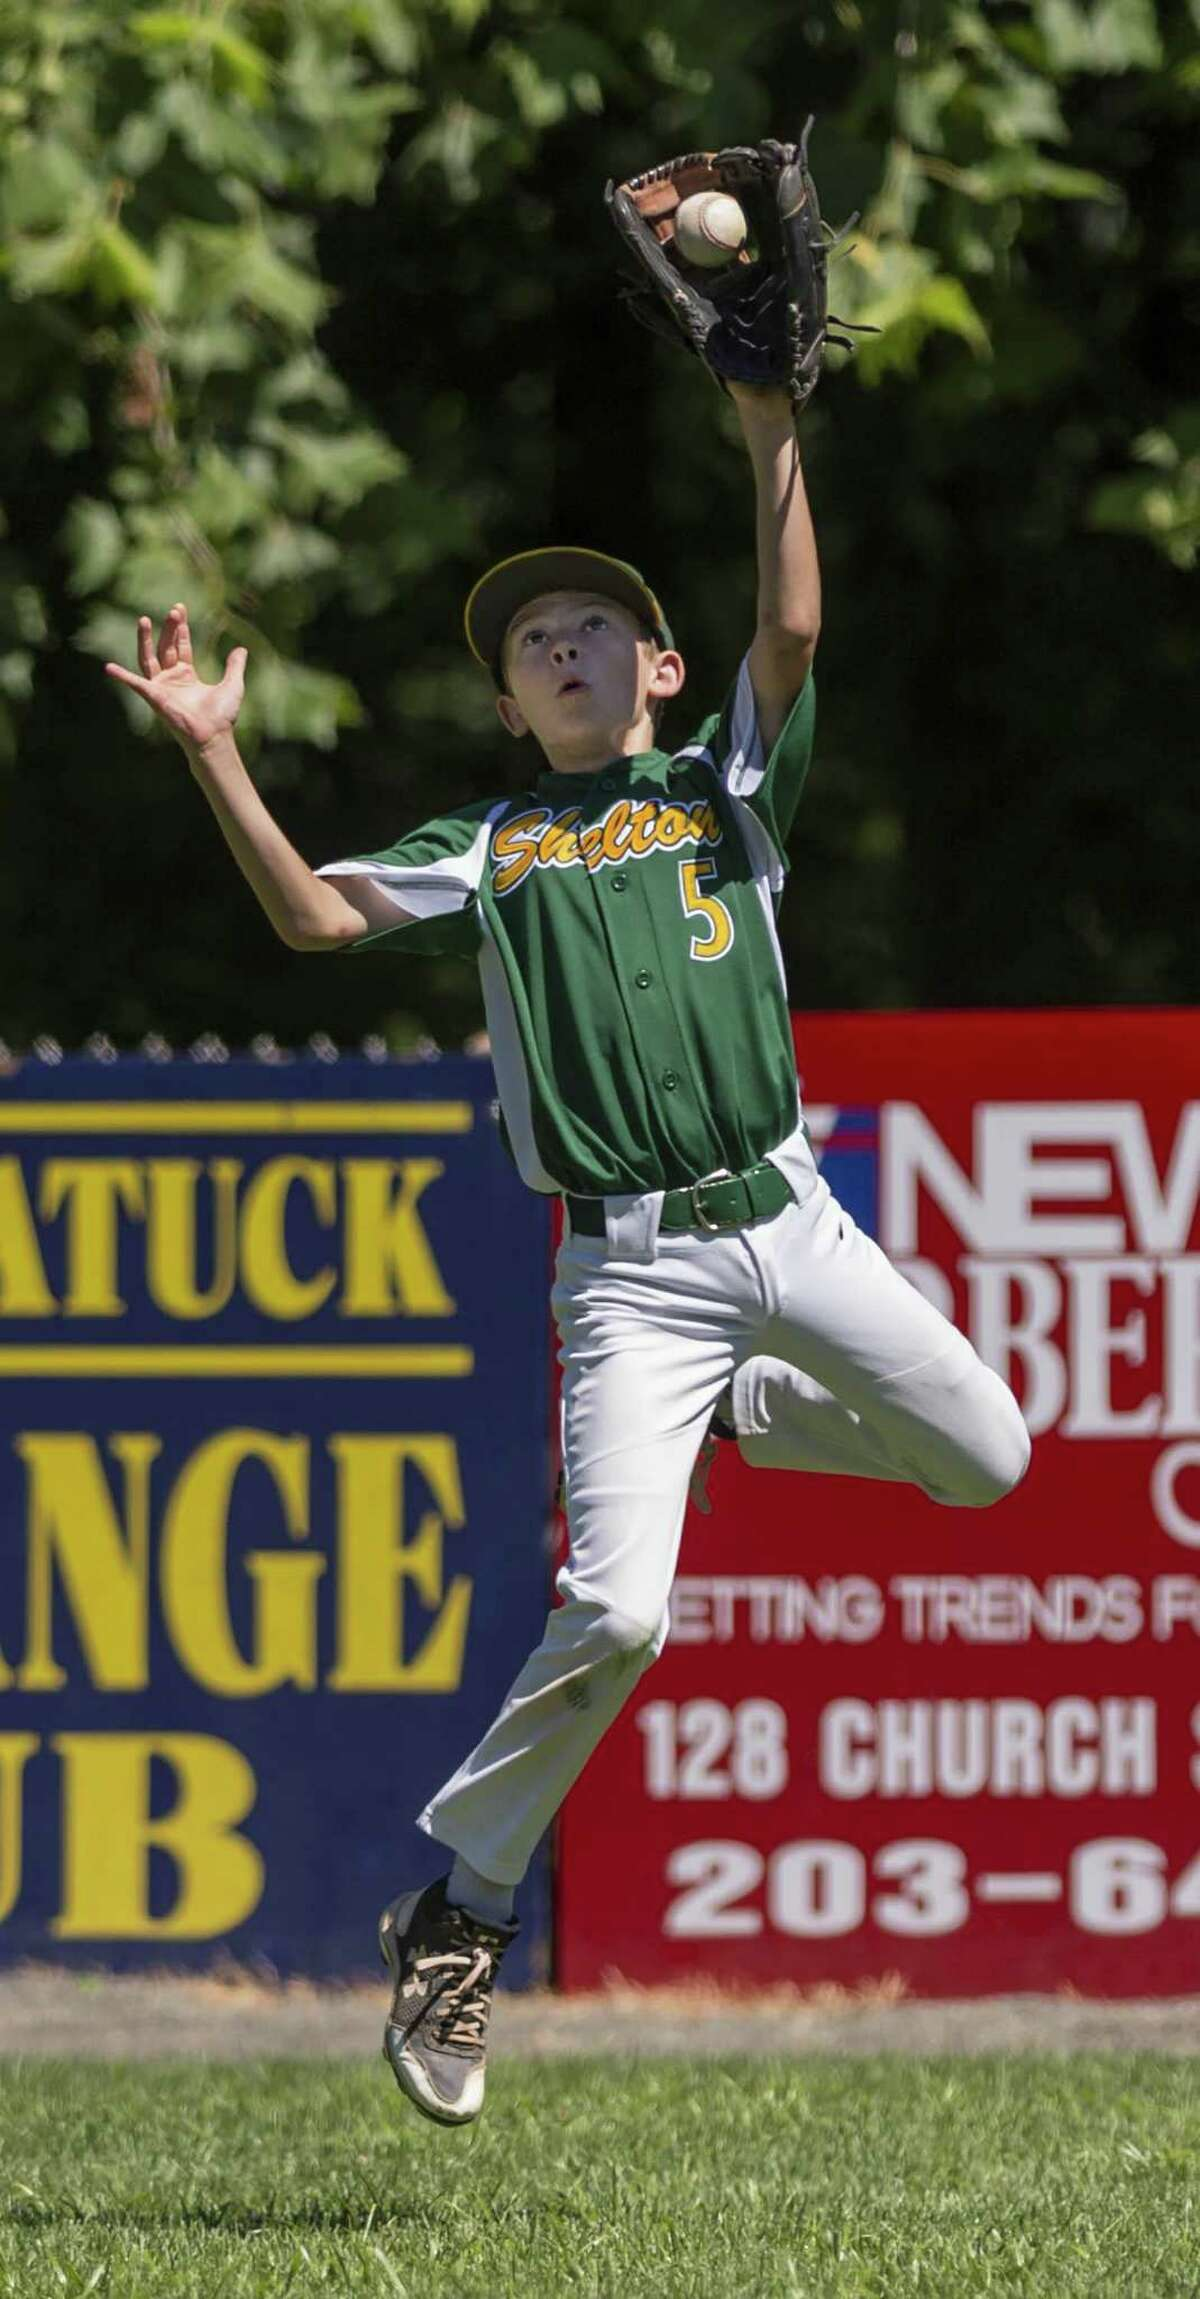 Shelton American center fielder Michael Spadaccino leaps to catch a fly ball during the district 2 Little League championship game against Wallingford played at Peter J. Foley Field, Naugatuck, CT. Saturday, July 21 2018.